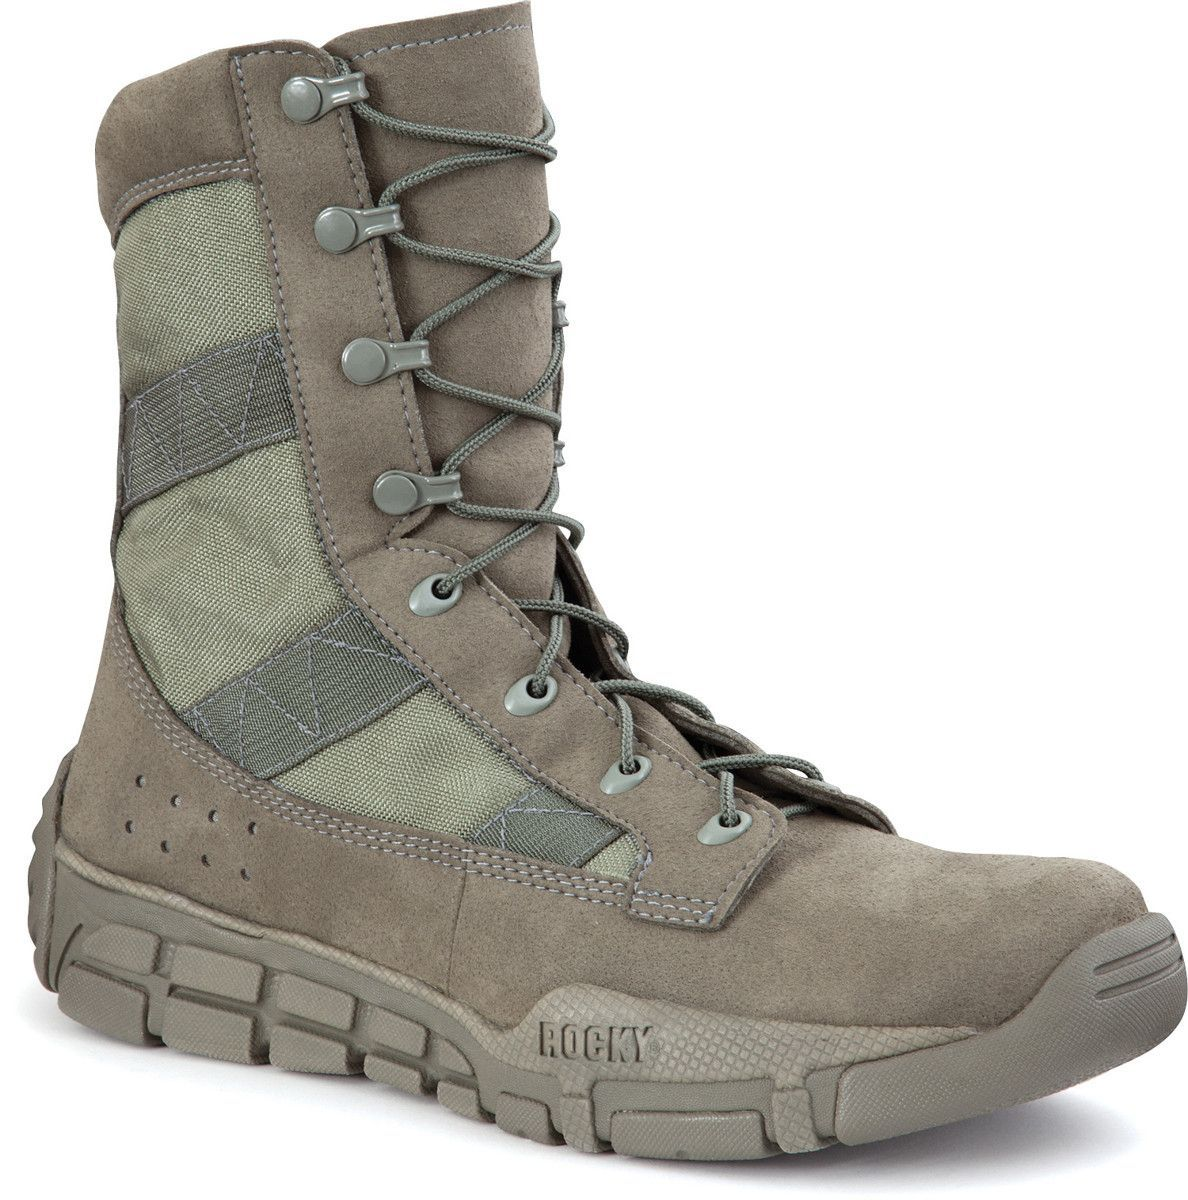 Rocky Mens Sage Green Faux Leather Lightweight C4t Trainer Military Duty Boots Tactical Boots Rocky Boots Duty Boots